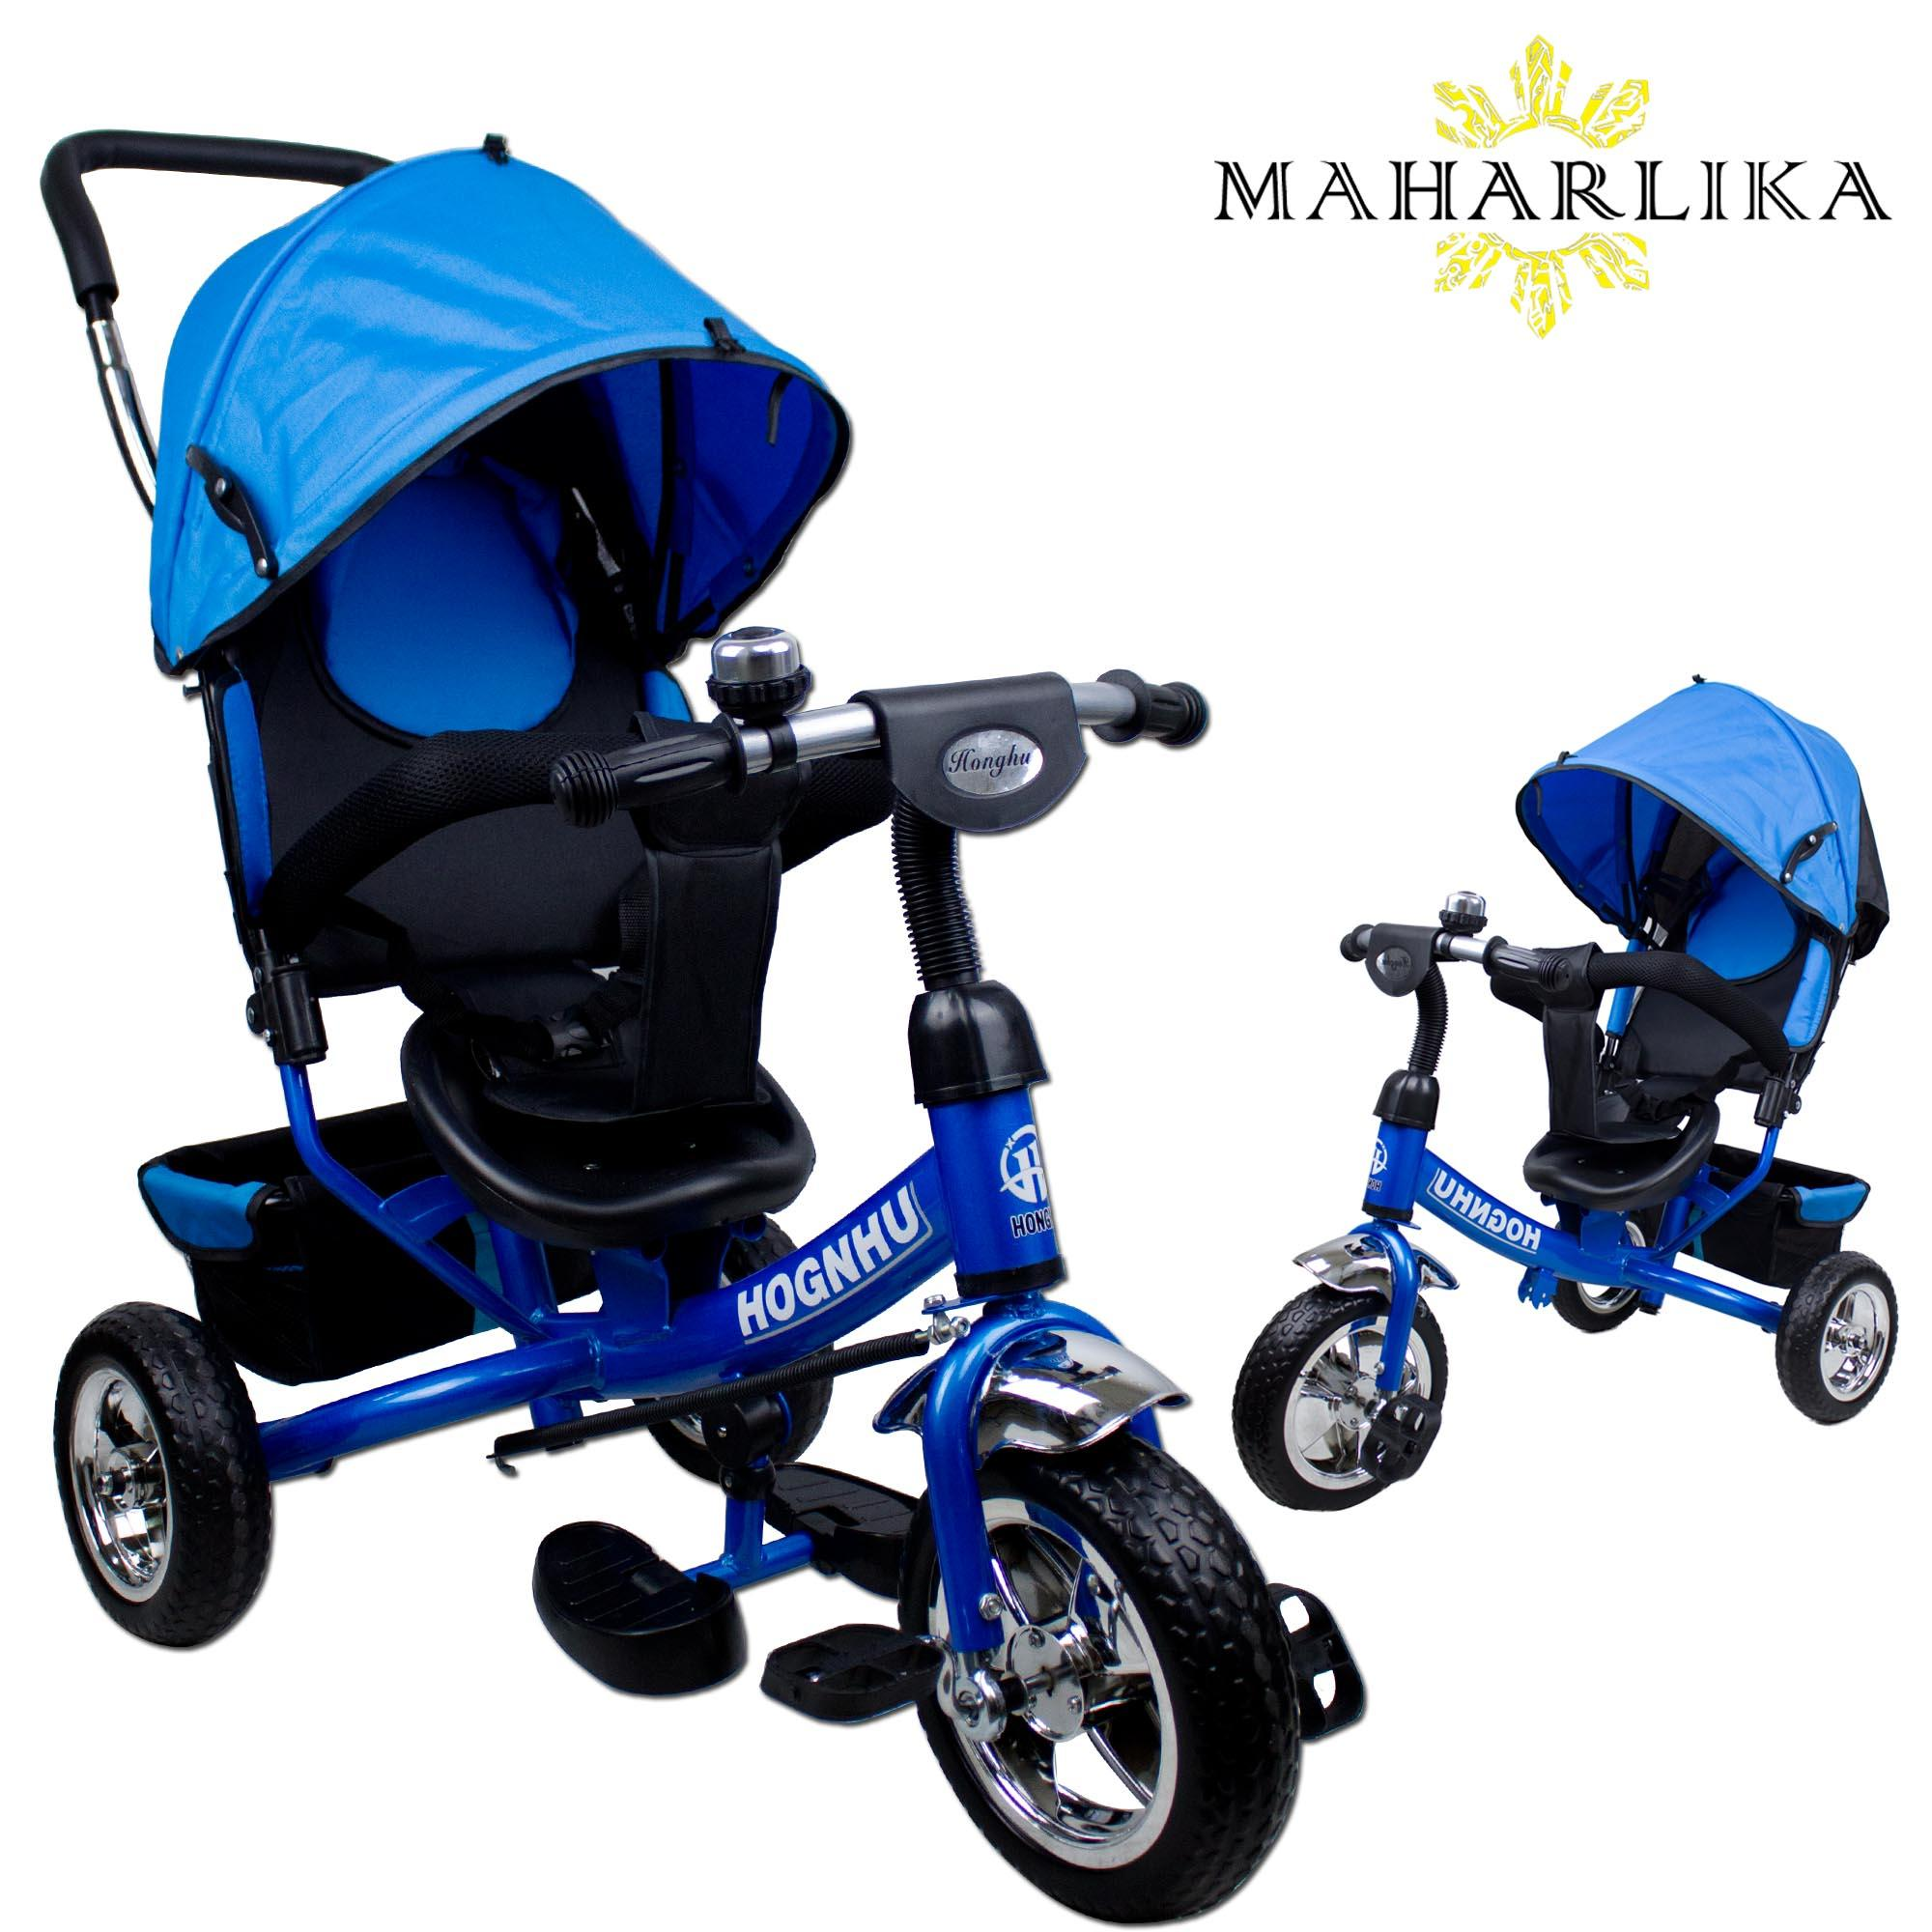 Mk 6188 Tricycle Assist Stroller Ride On Tricycle Bicycle Bike Safety Bar Rain Safe With Steer Handle By Maharlika.